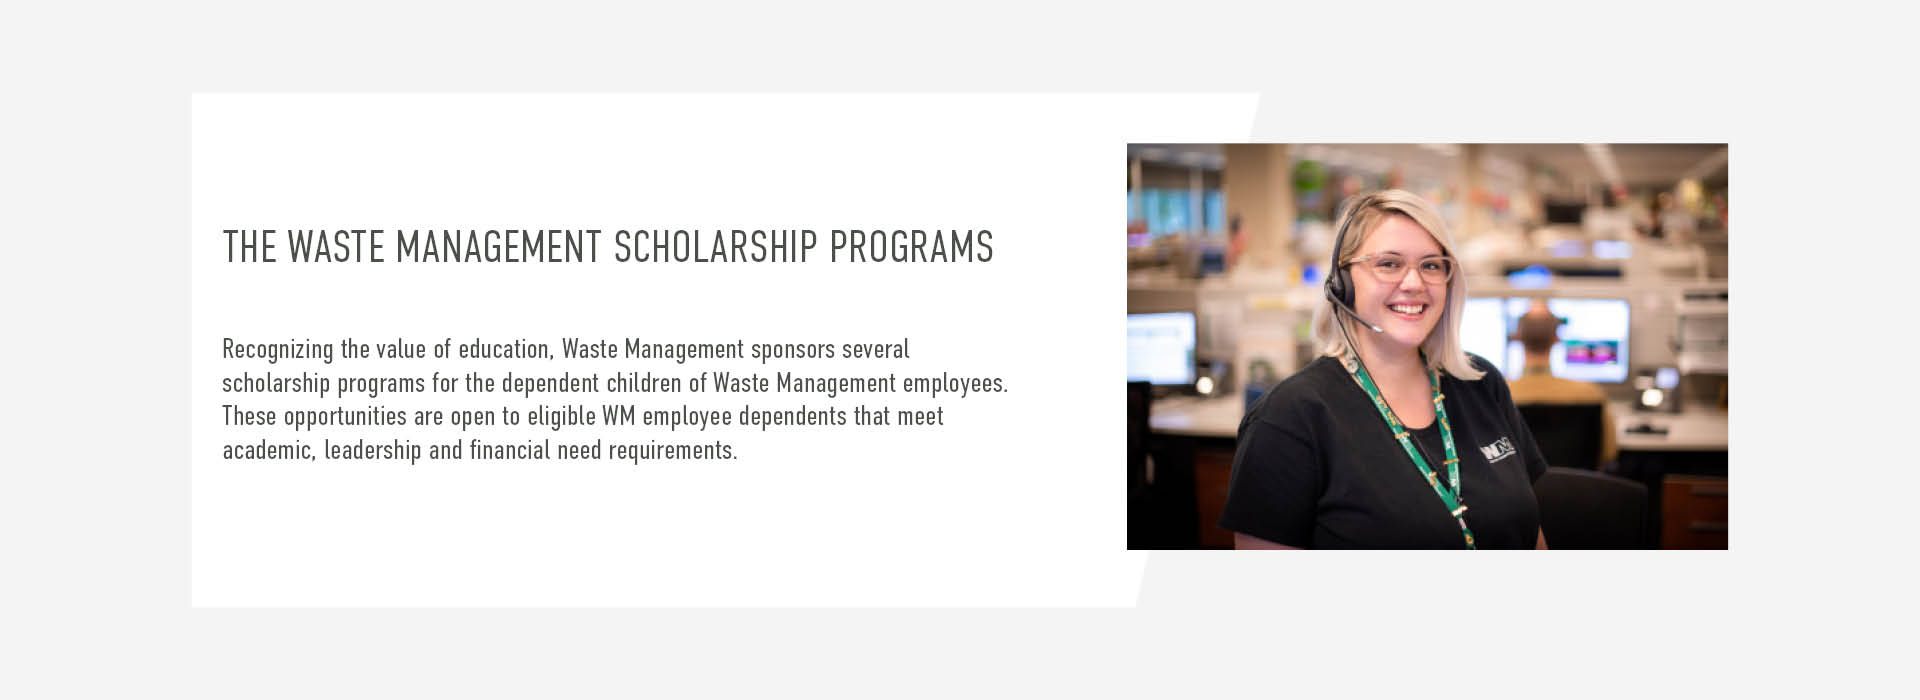 Recognizing the value of education, Waste Management sponsors several  scholarship programs for the dependent children of Waste Management employees. These opportunities are open to eligible WM employee dependents that meet  academic, leadership and financial need requirements.